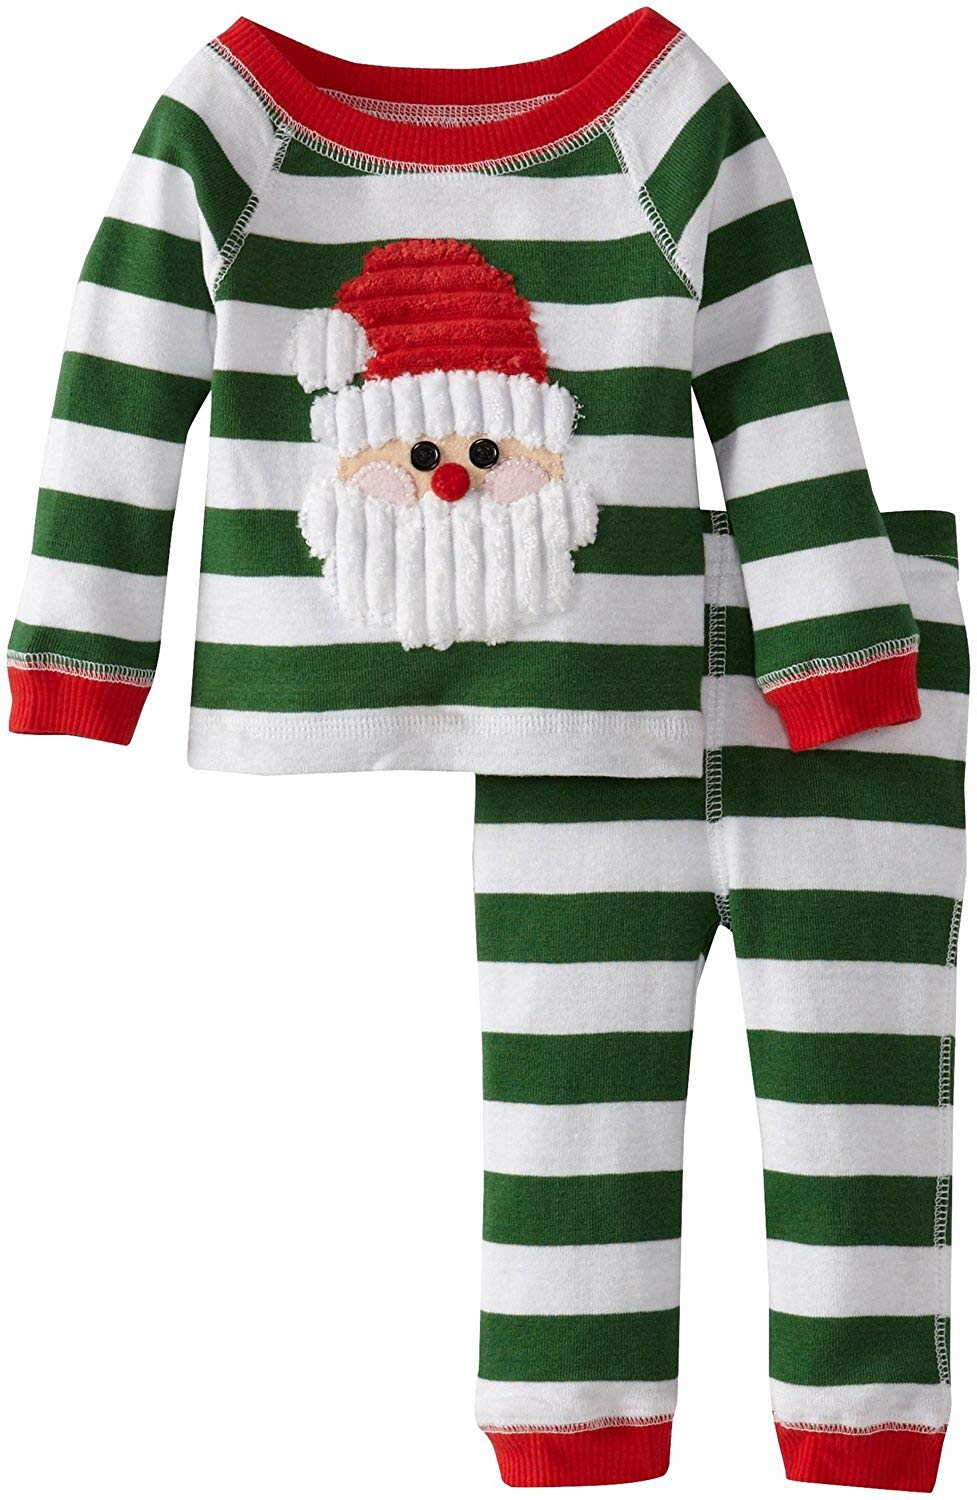 Cheap Baby Santa Outfit, find Baby Santa Outfit deals on line at ...